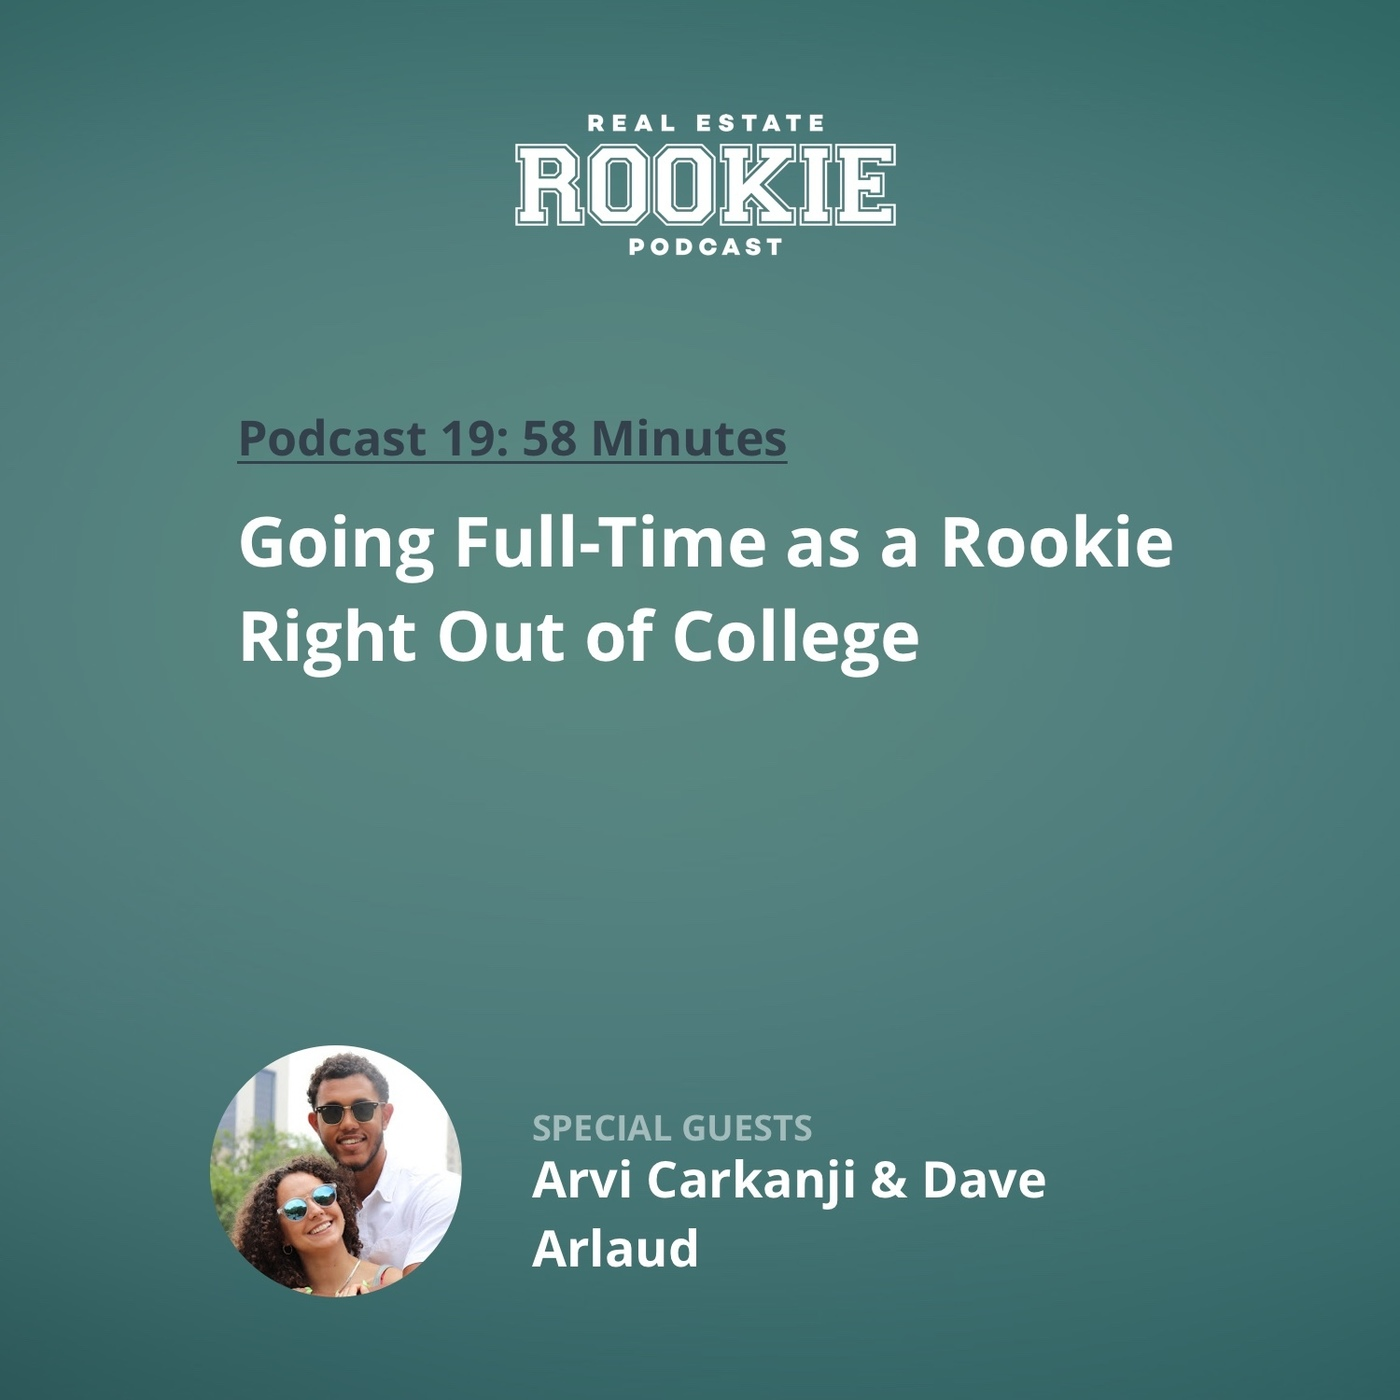 Going Full-Time as a Rookie Right Out of College With Arvi Carkanji and Dave Arlaud